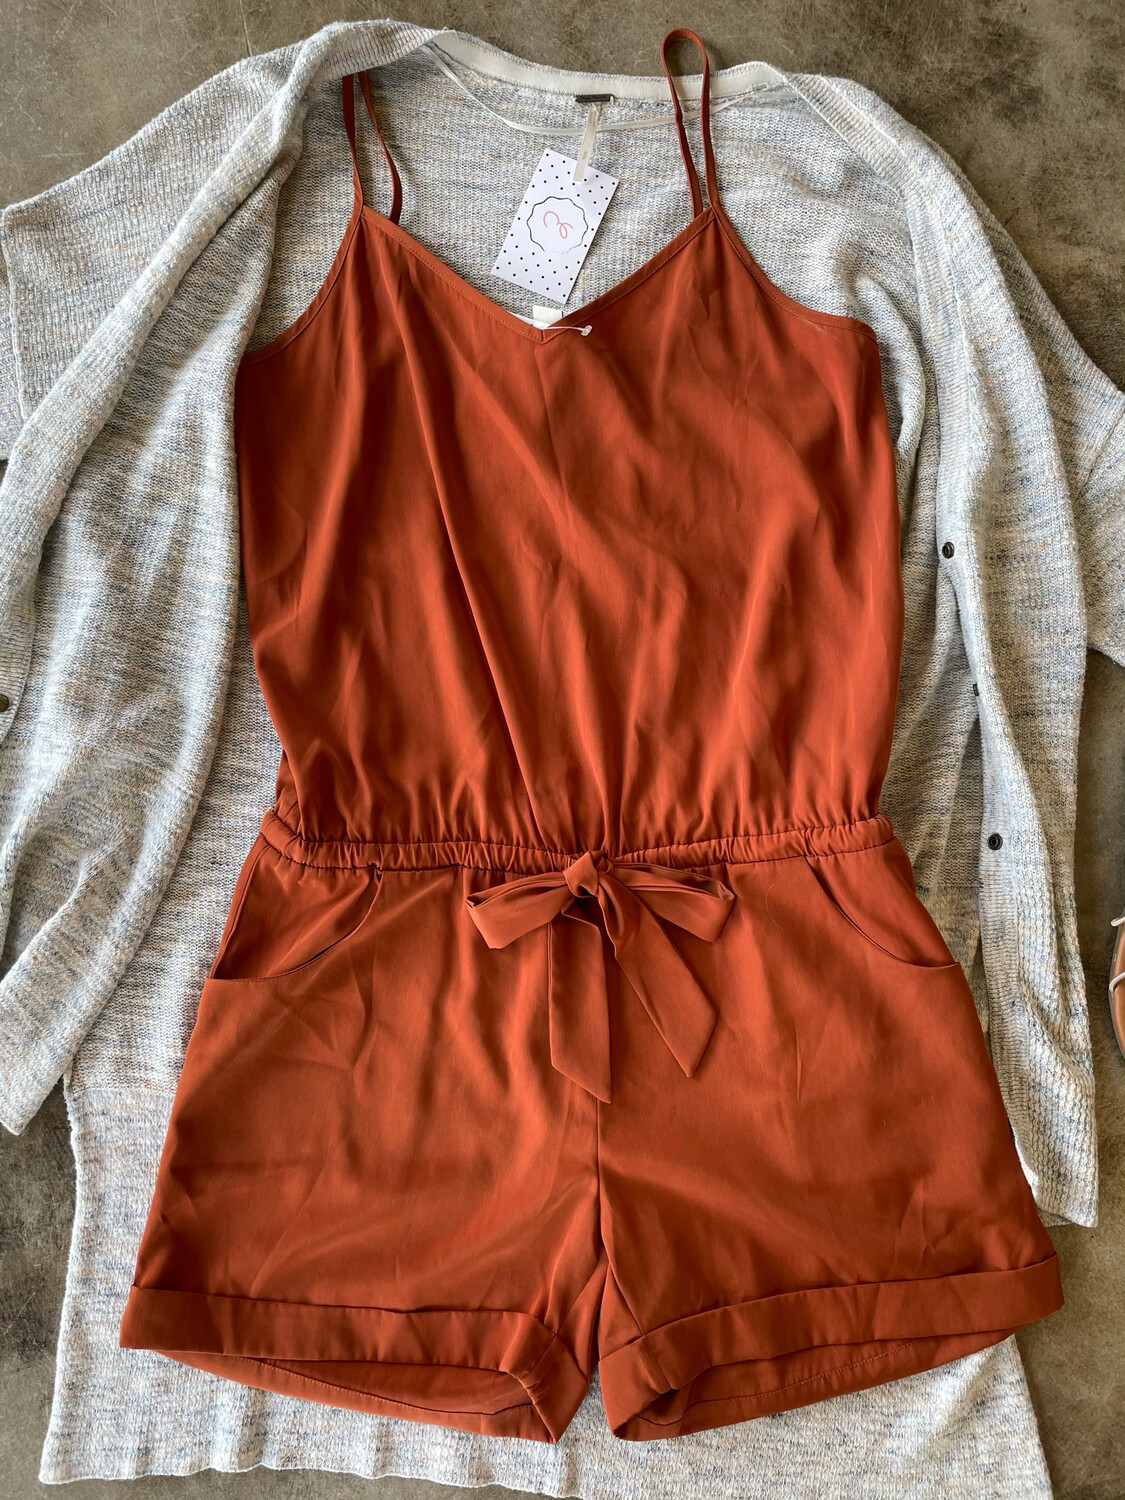 J. Crew Congac Belted Stappy Romper - XS